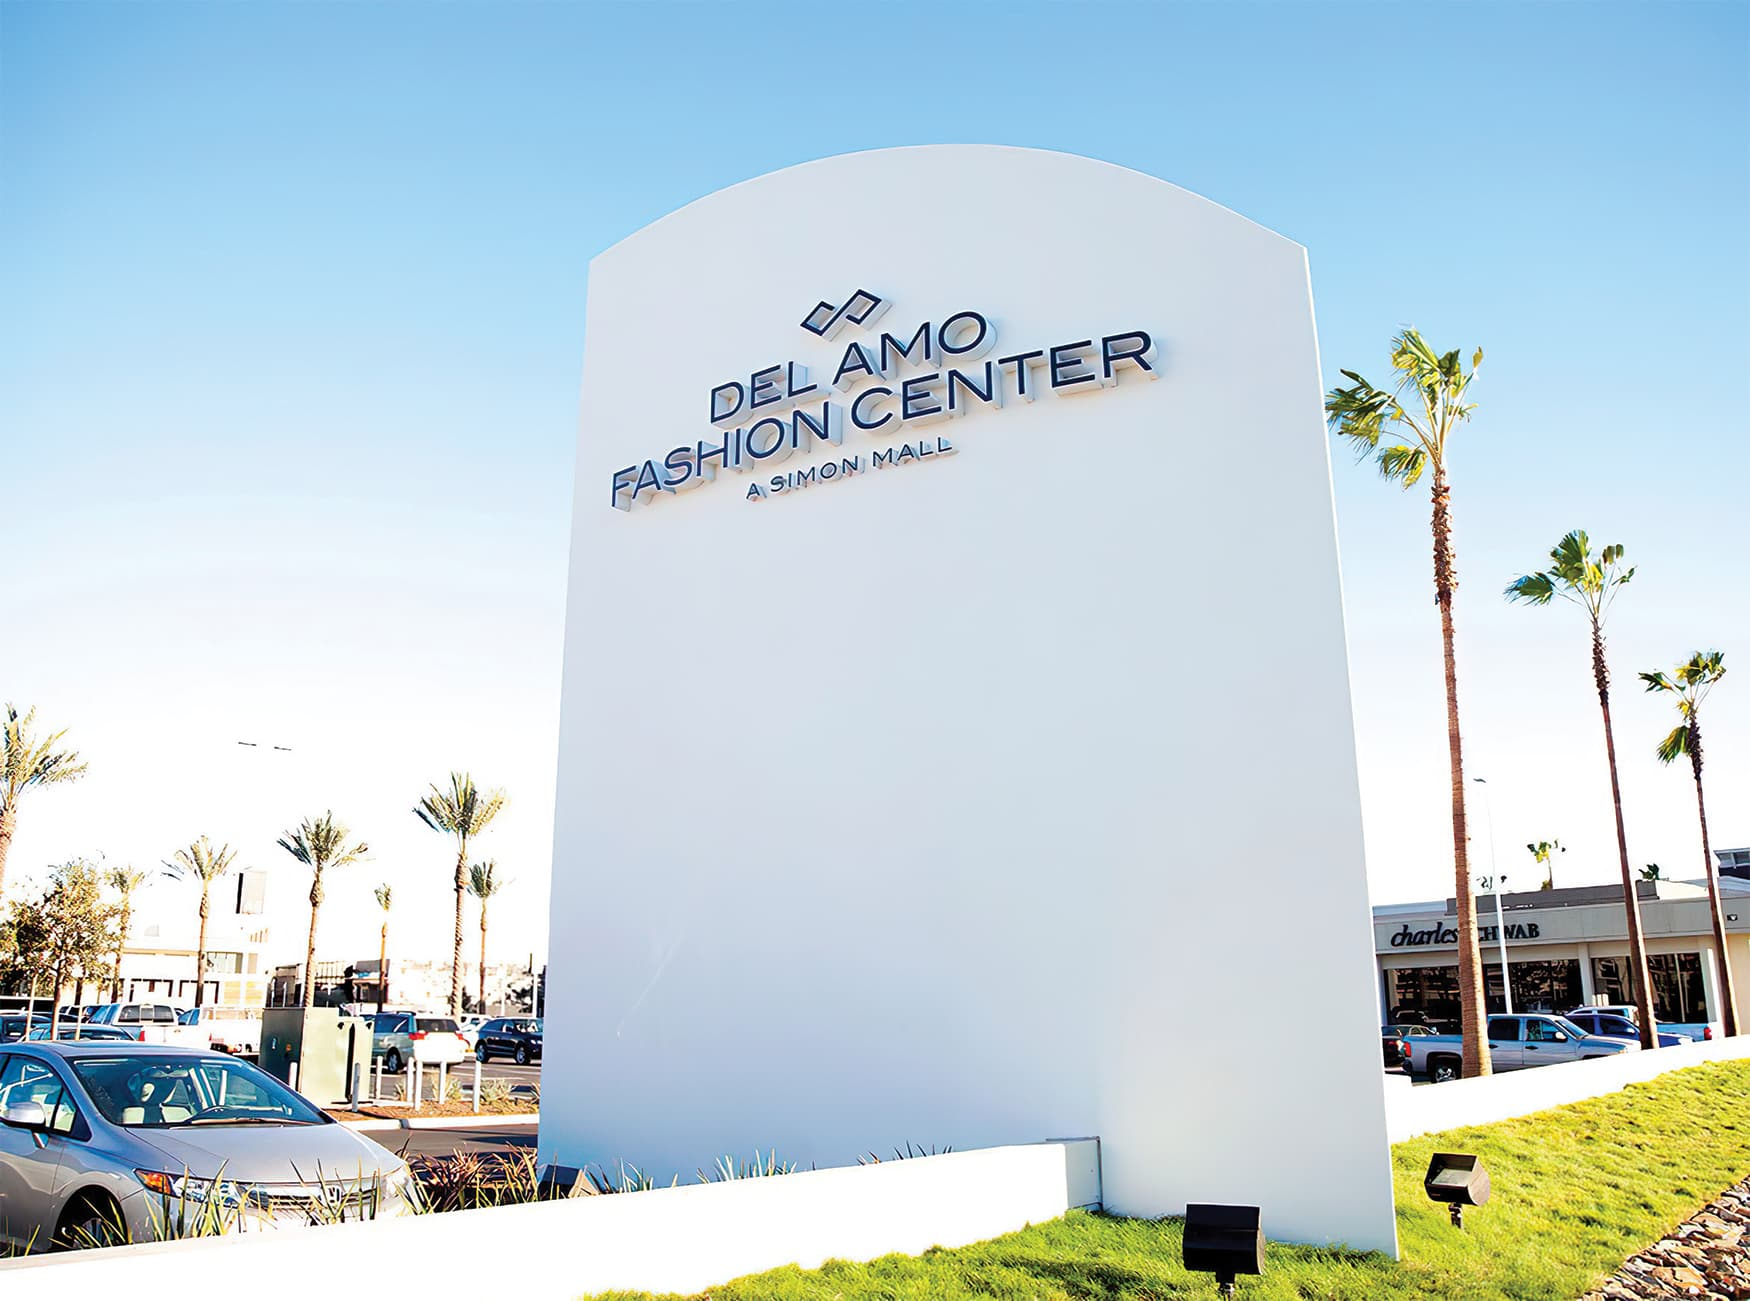 Del Amo Fashion Center located in Torrance, California. Project monumentation and project identity signage.